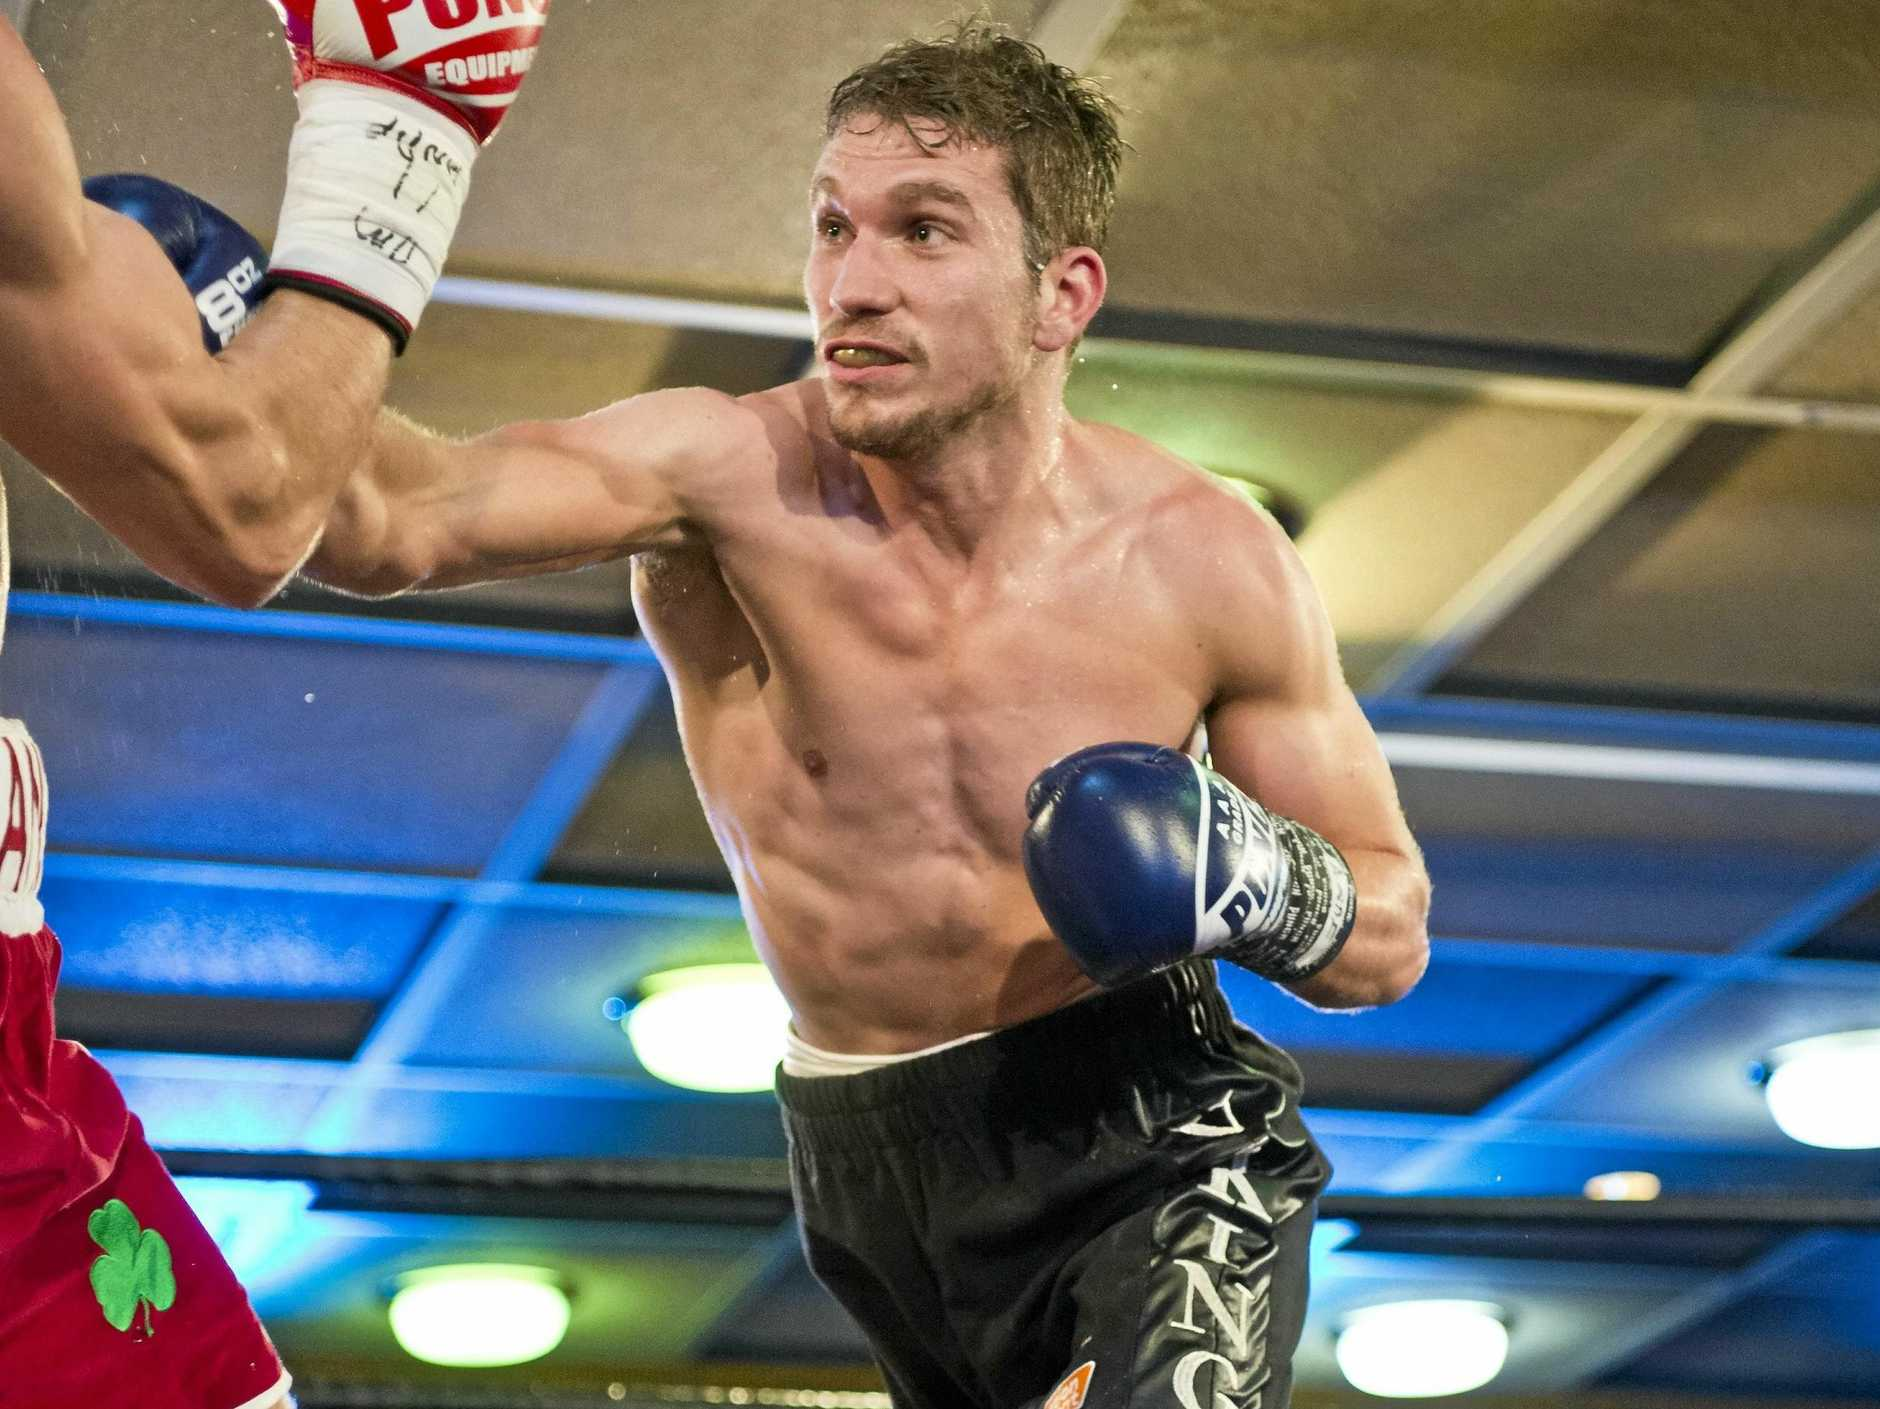 Steve Spark on his way to victory over Gearoid Clancy in their Australian super lightweight title bout at TGW Rumours International in August.